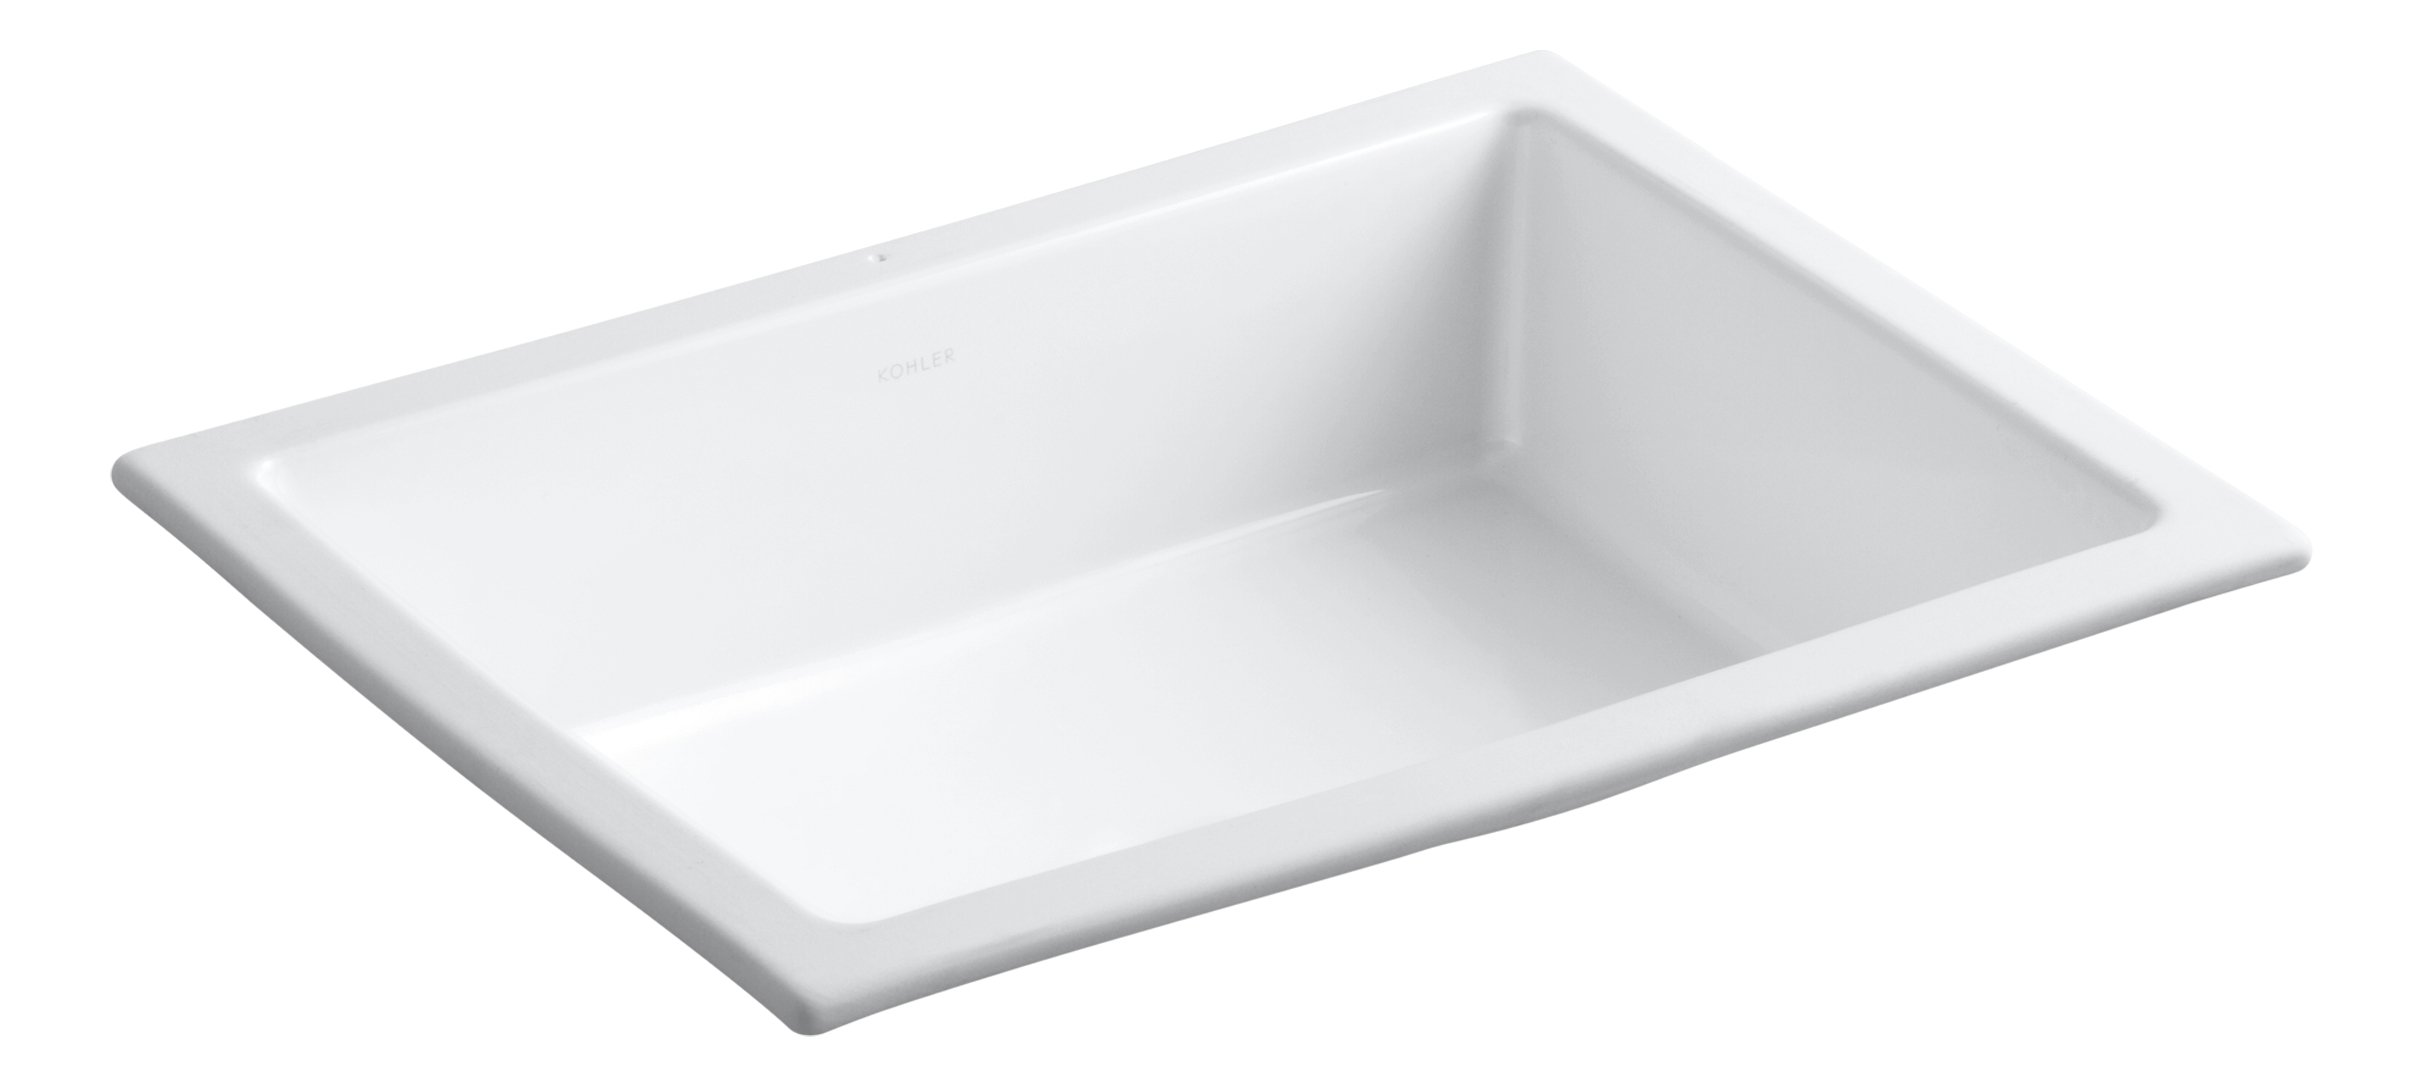 KOHLER K-2882-0 Verticyl Rectangle Undercounter Bathroom Sink, White by Kohler